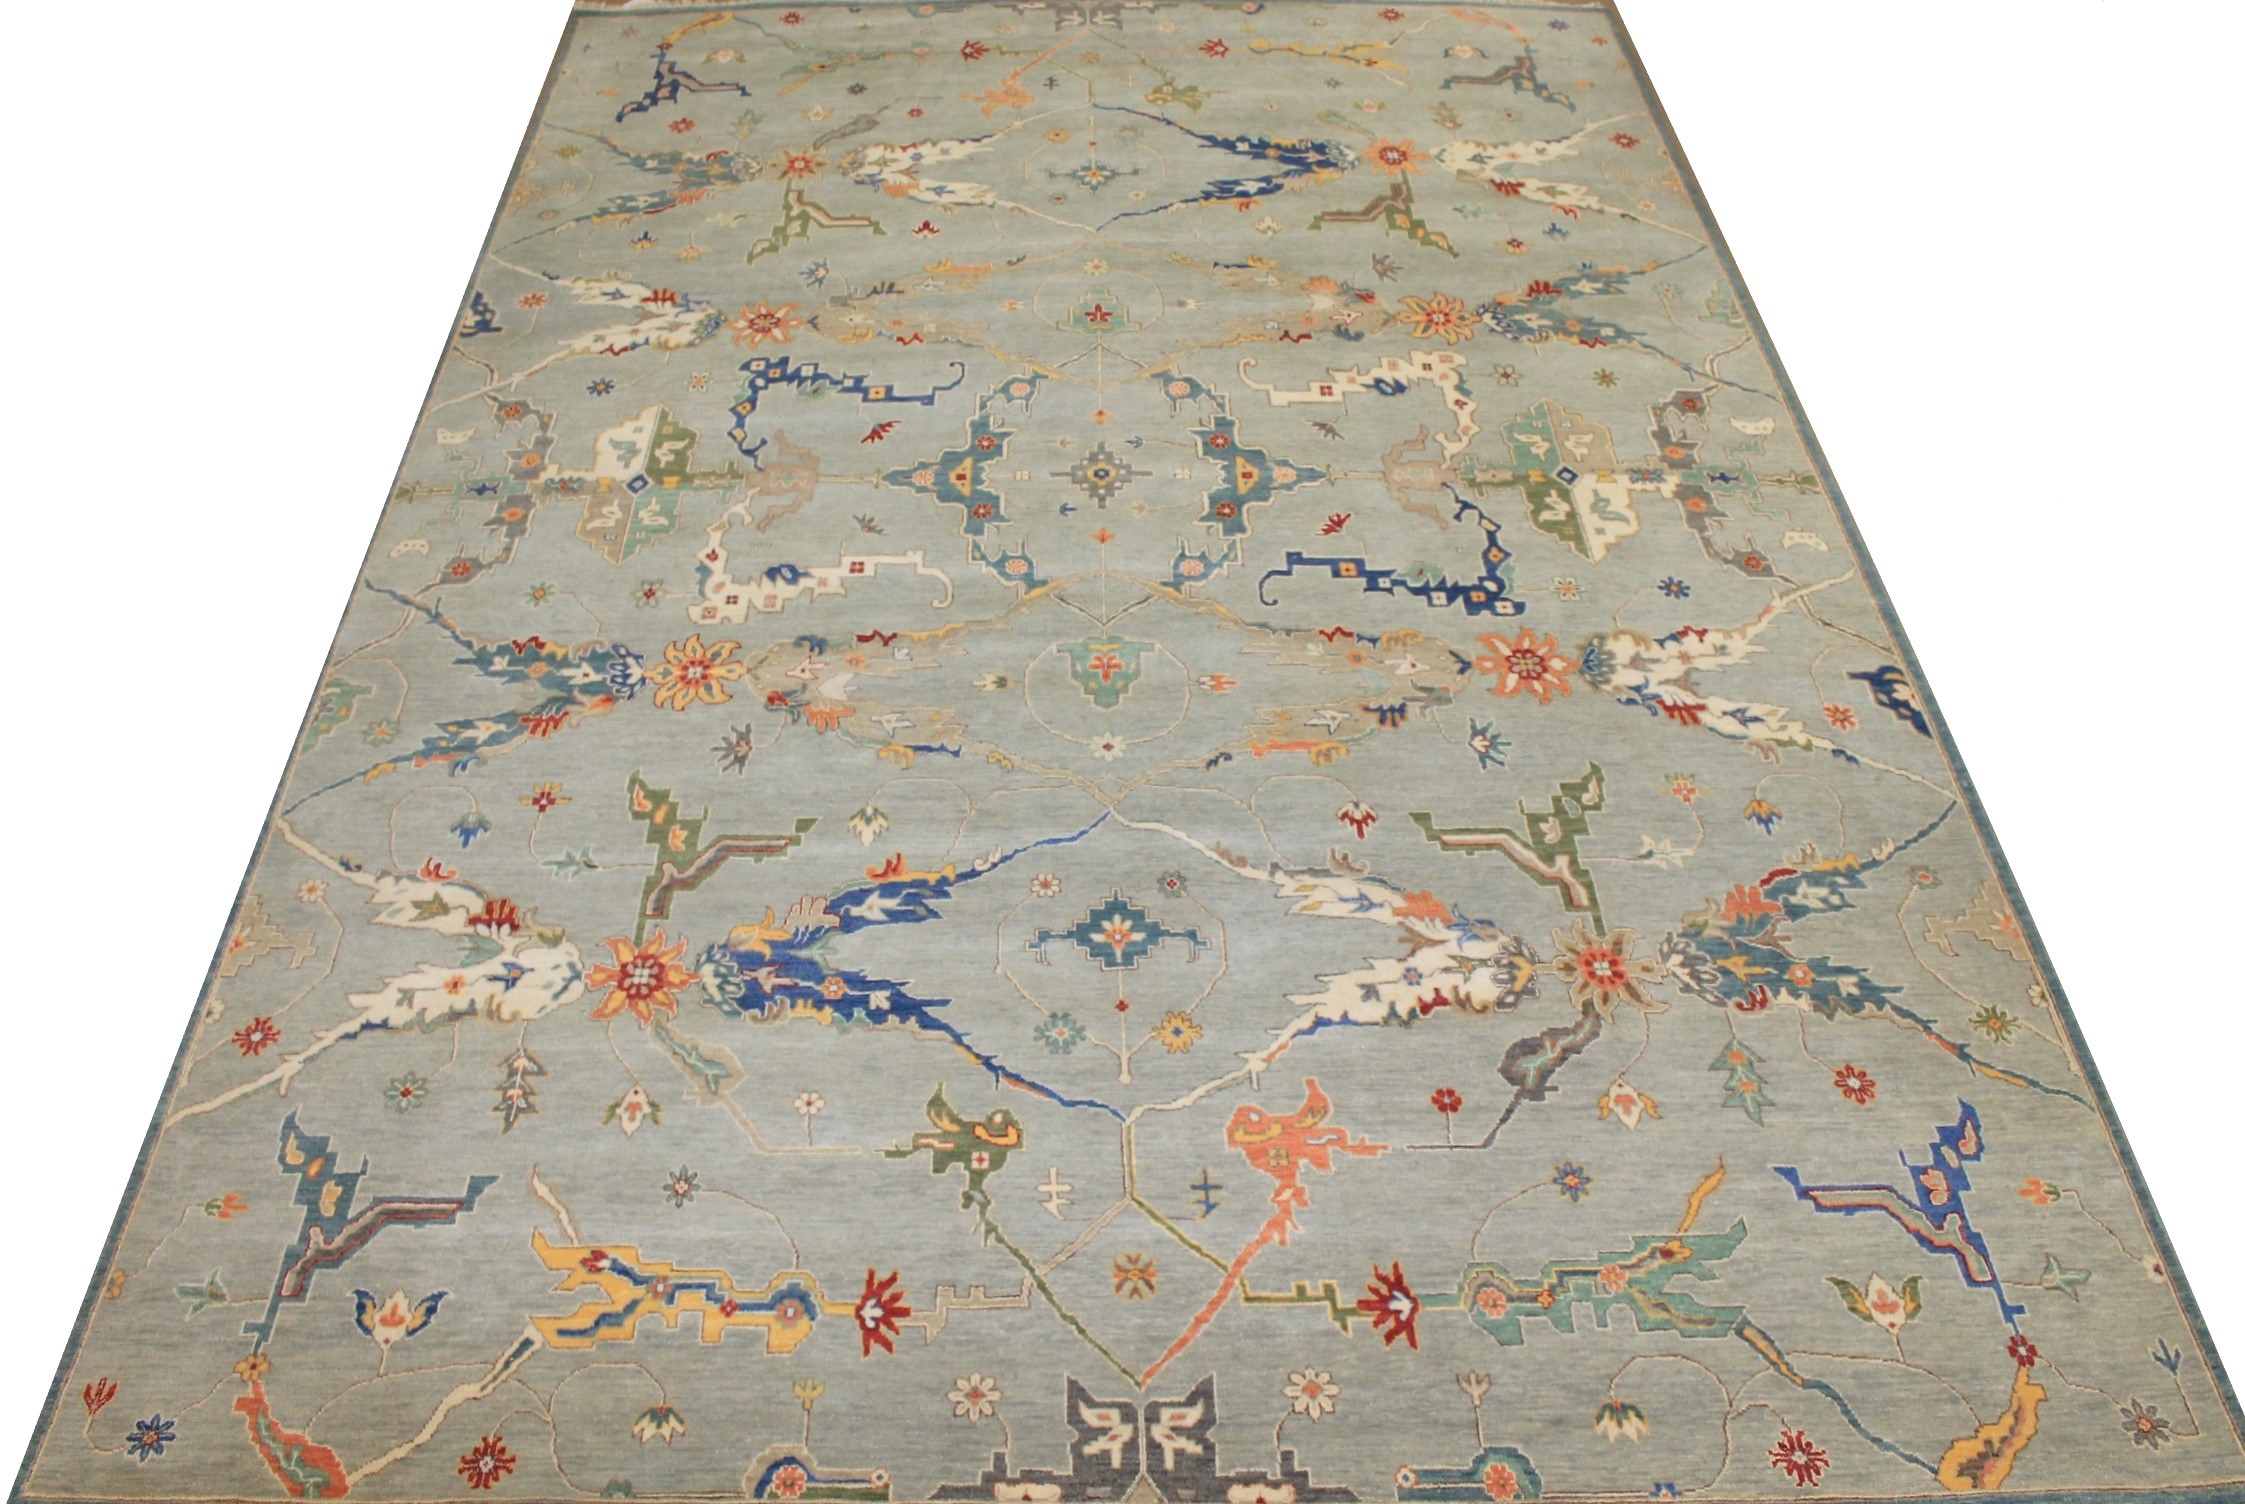 10x14 Oriental Hand Knotted Wool Area Rug - MR025476